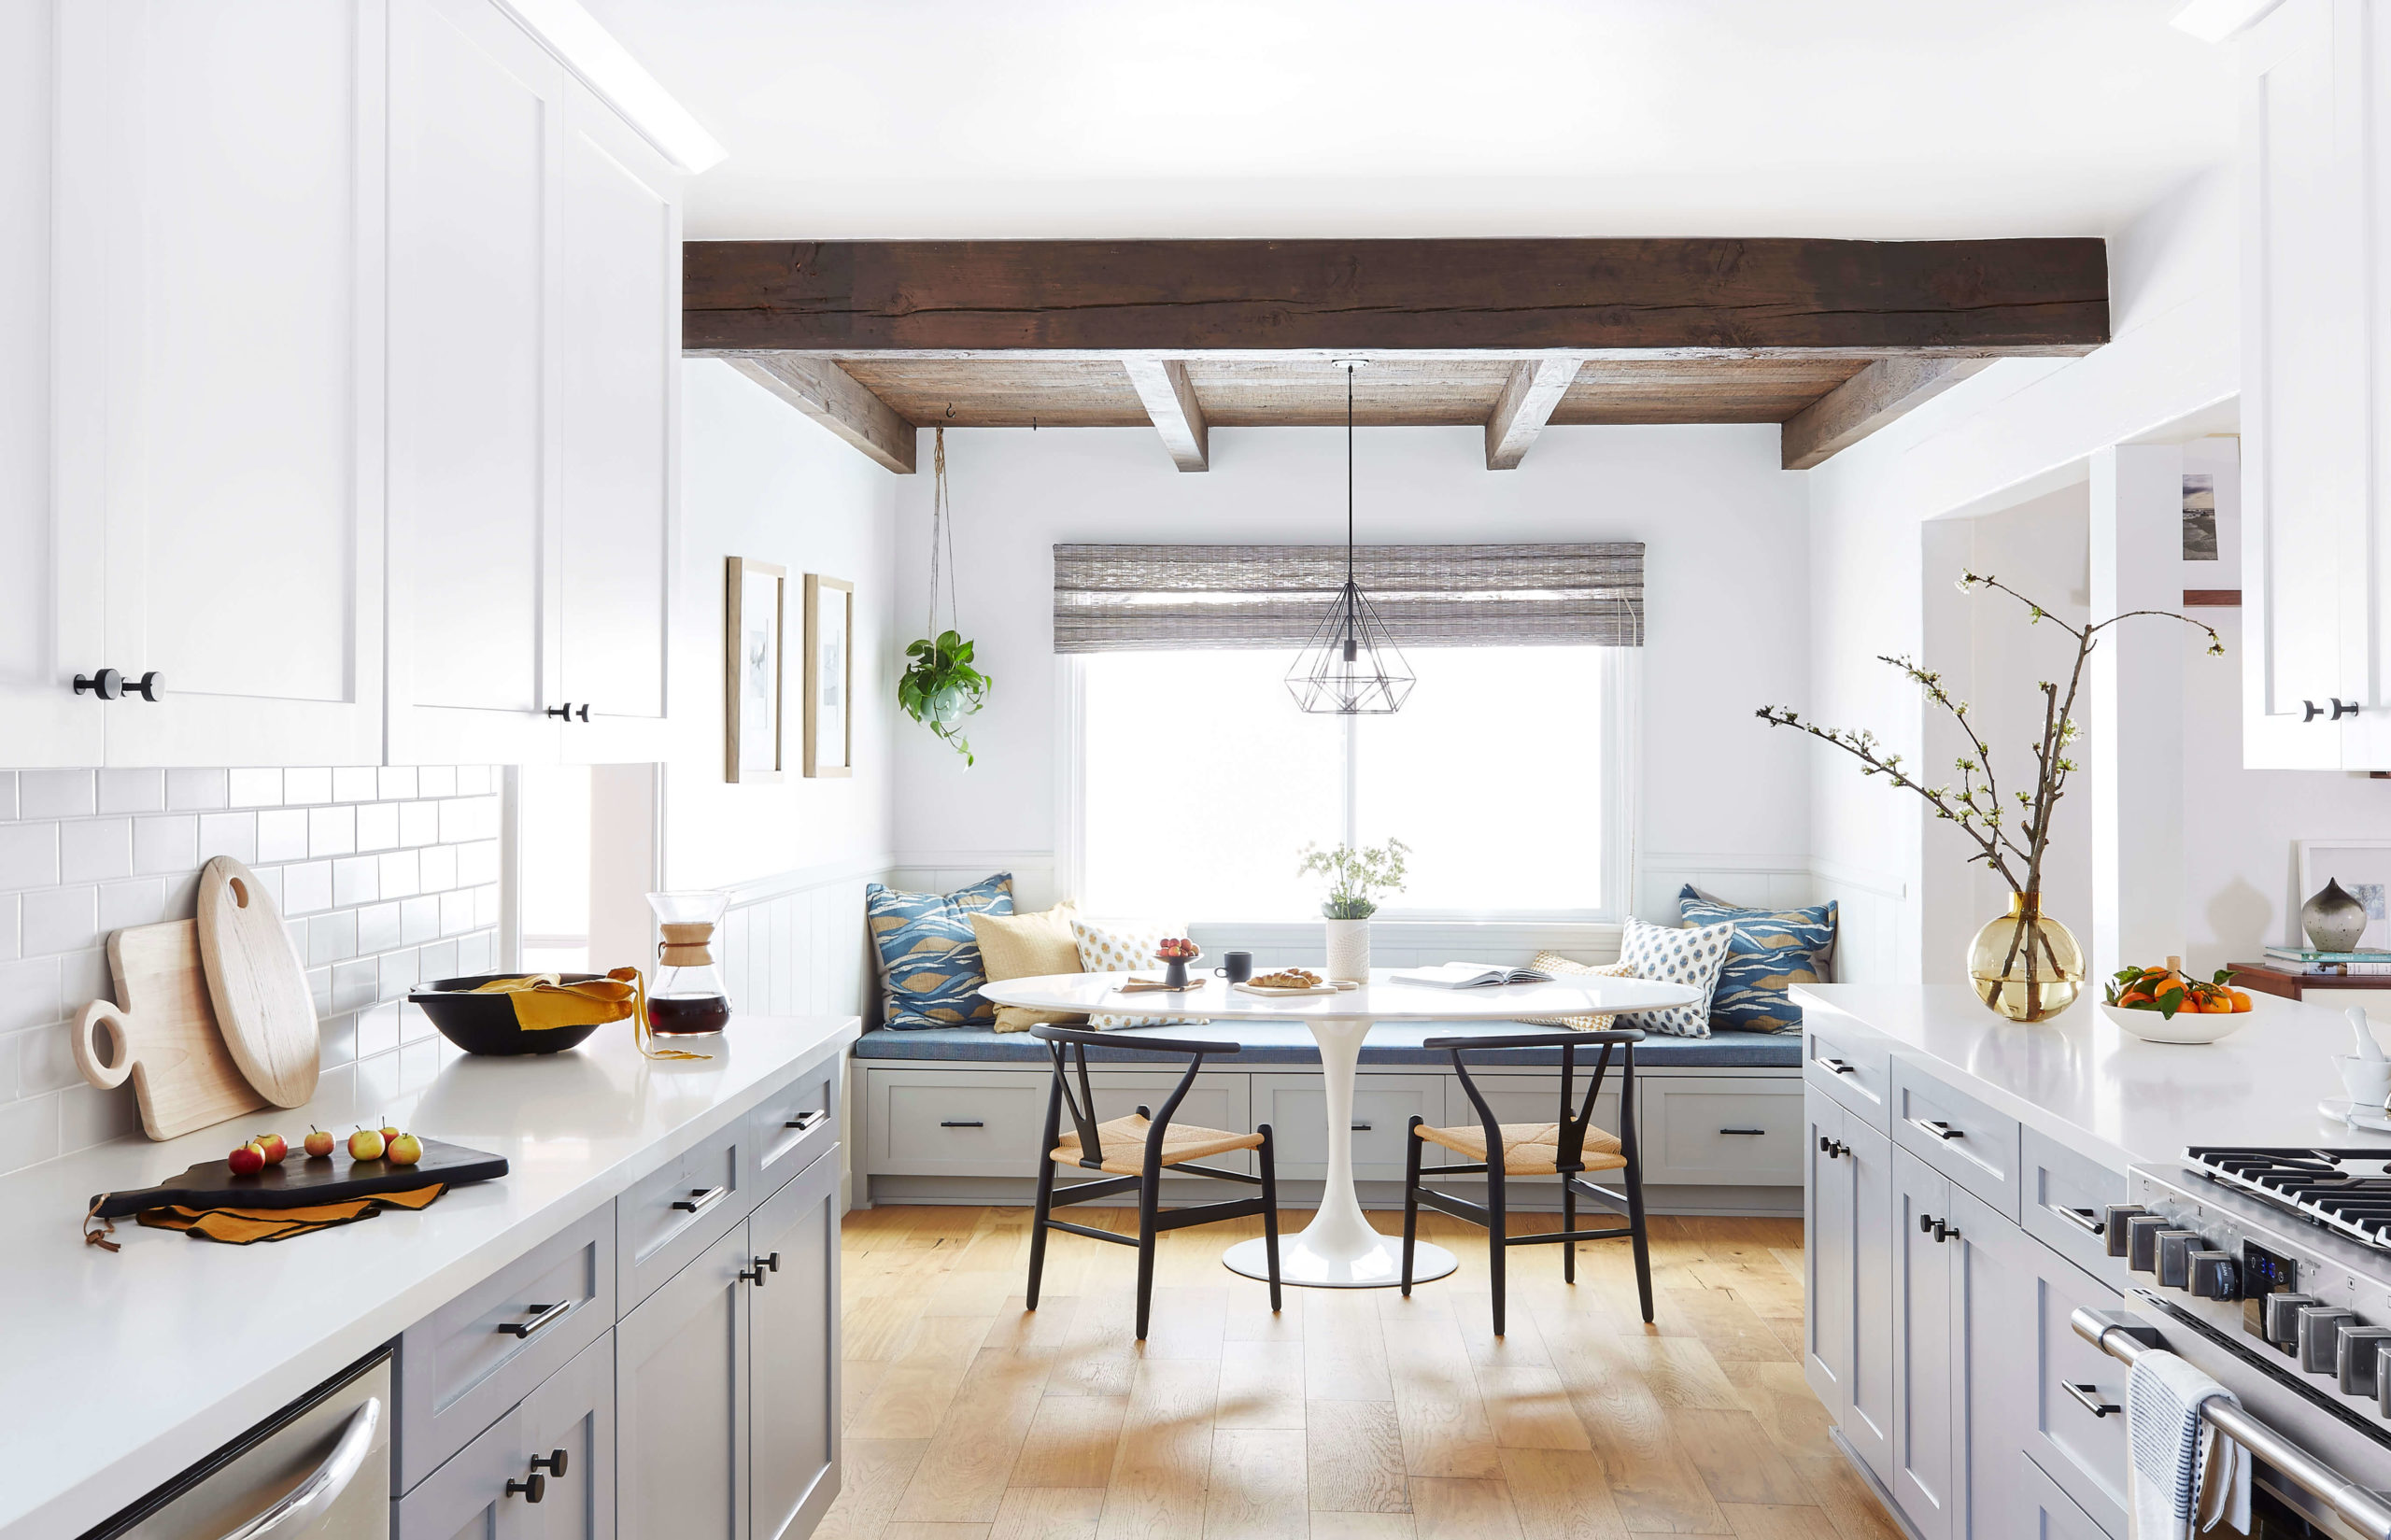 Modern grey and white kitchen interior design by Ginny Macdonald Design